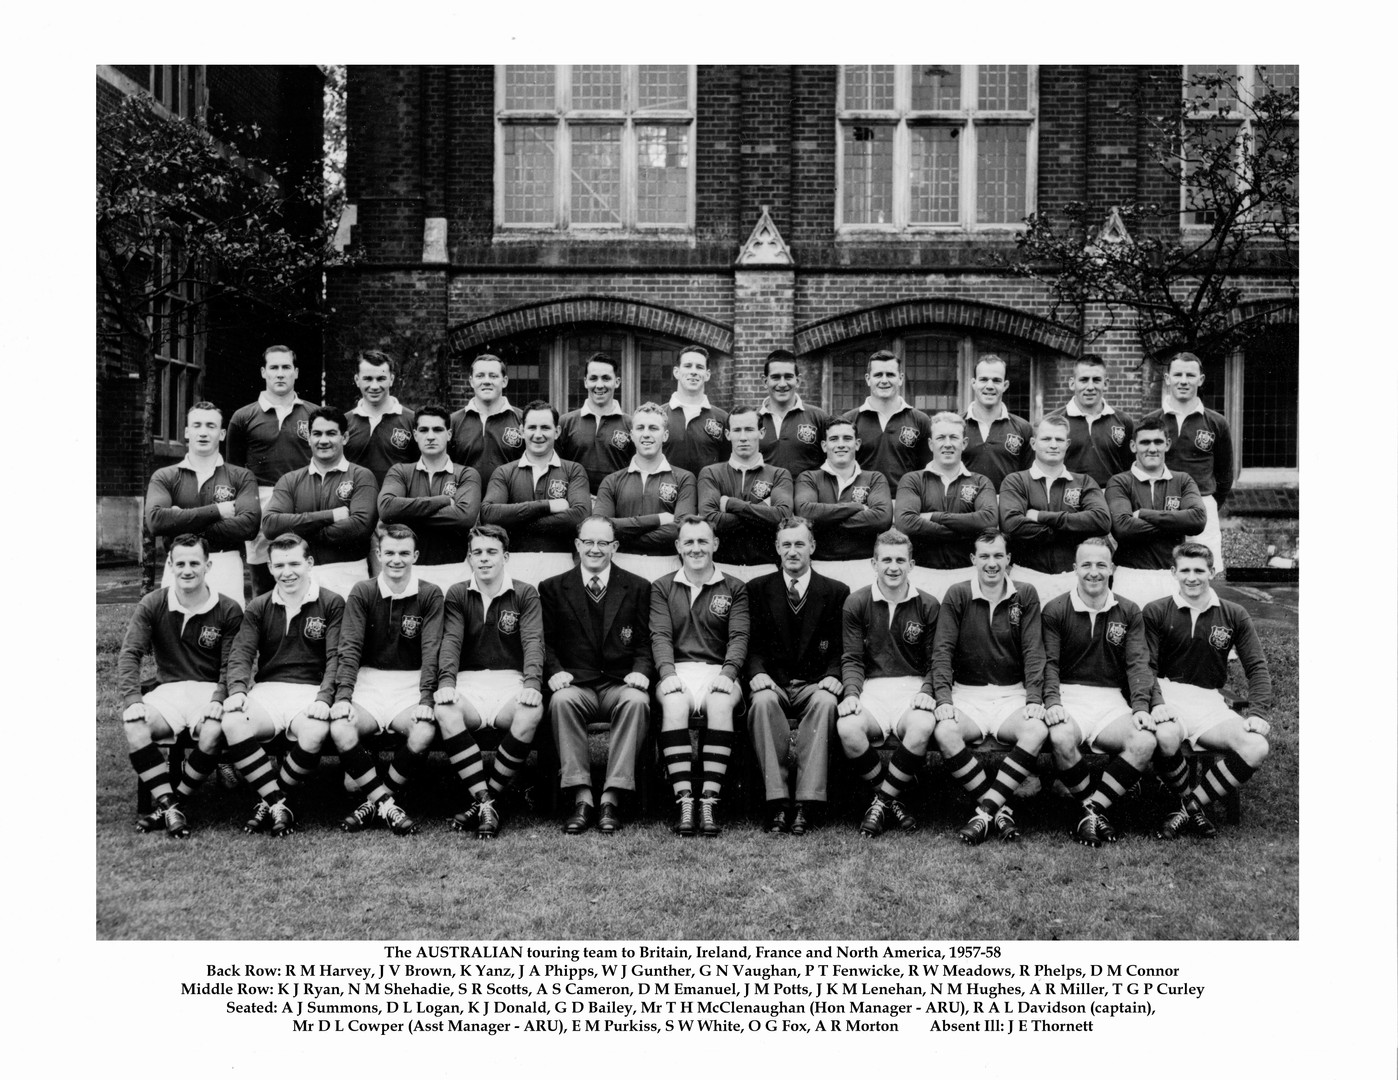 1957 Wallabies Tour Squad feat. Ken Yanz